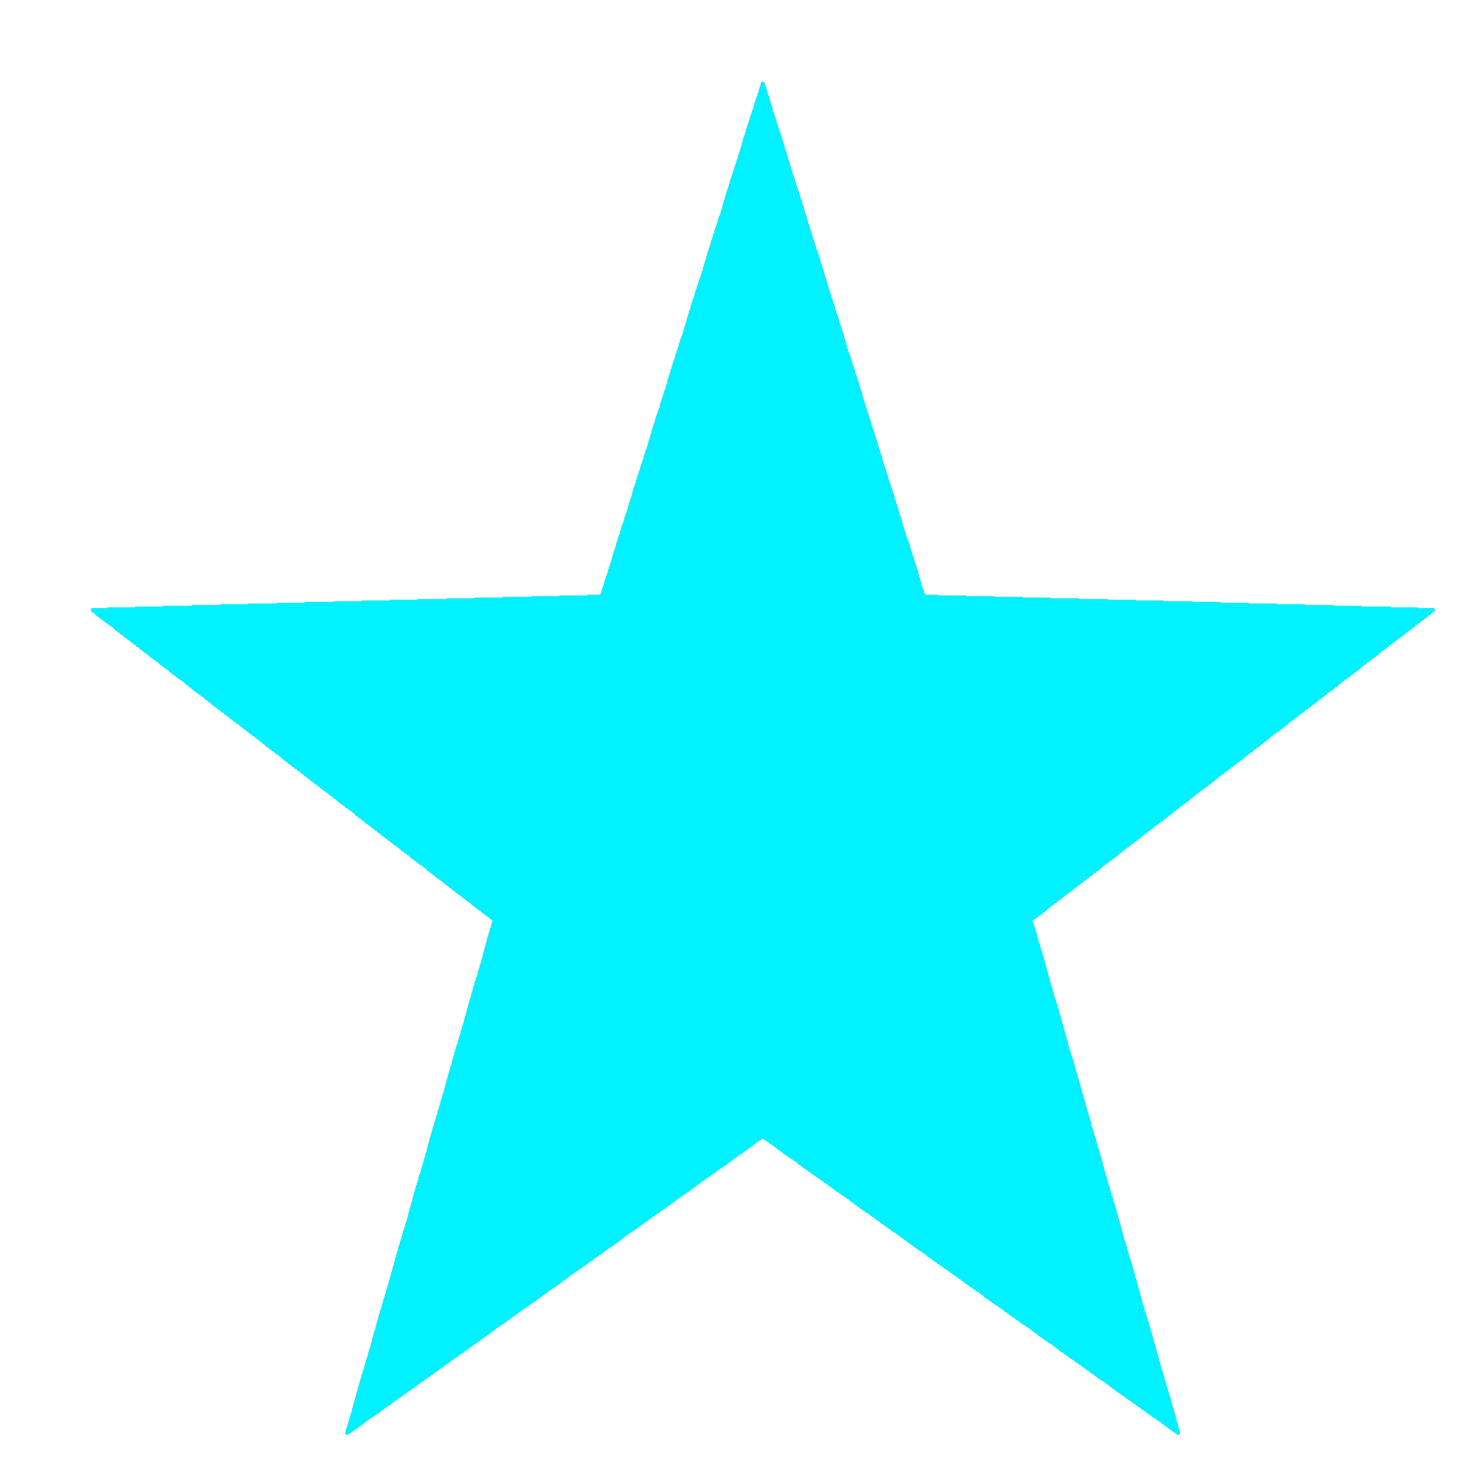 Star clipart template picture freeuse library Star Clipart picture freeuse library